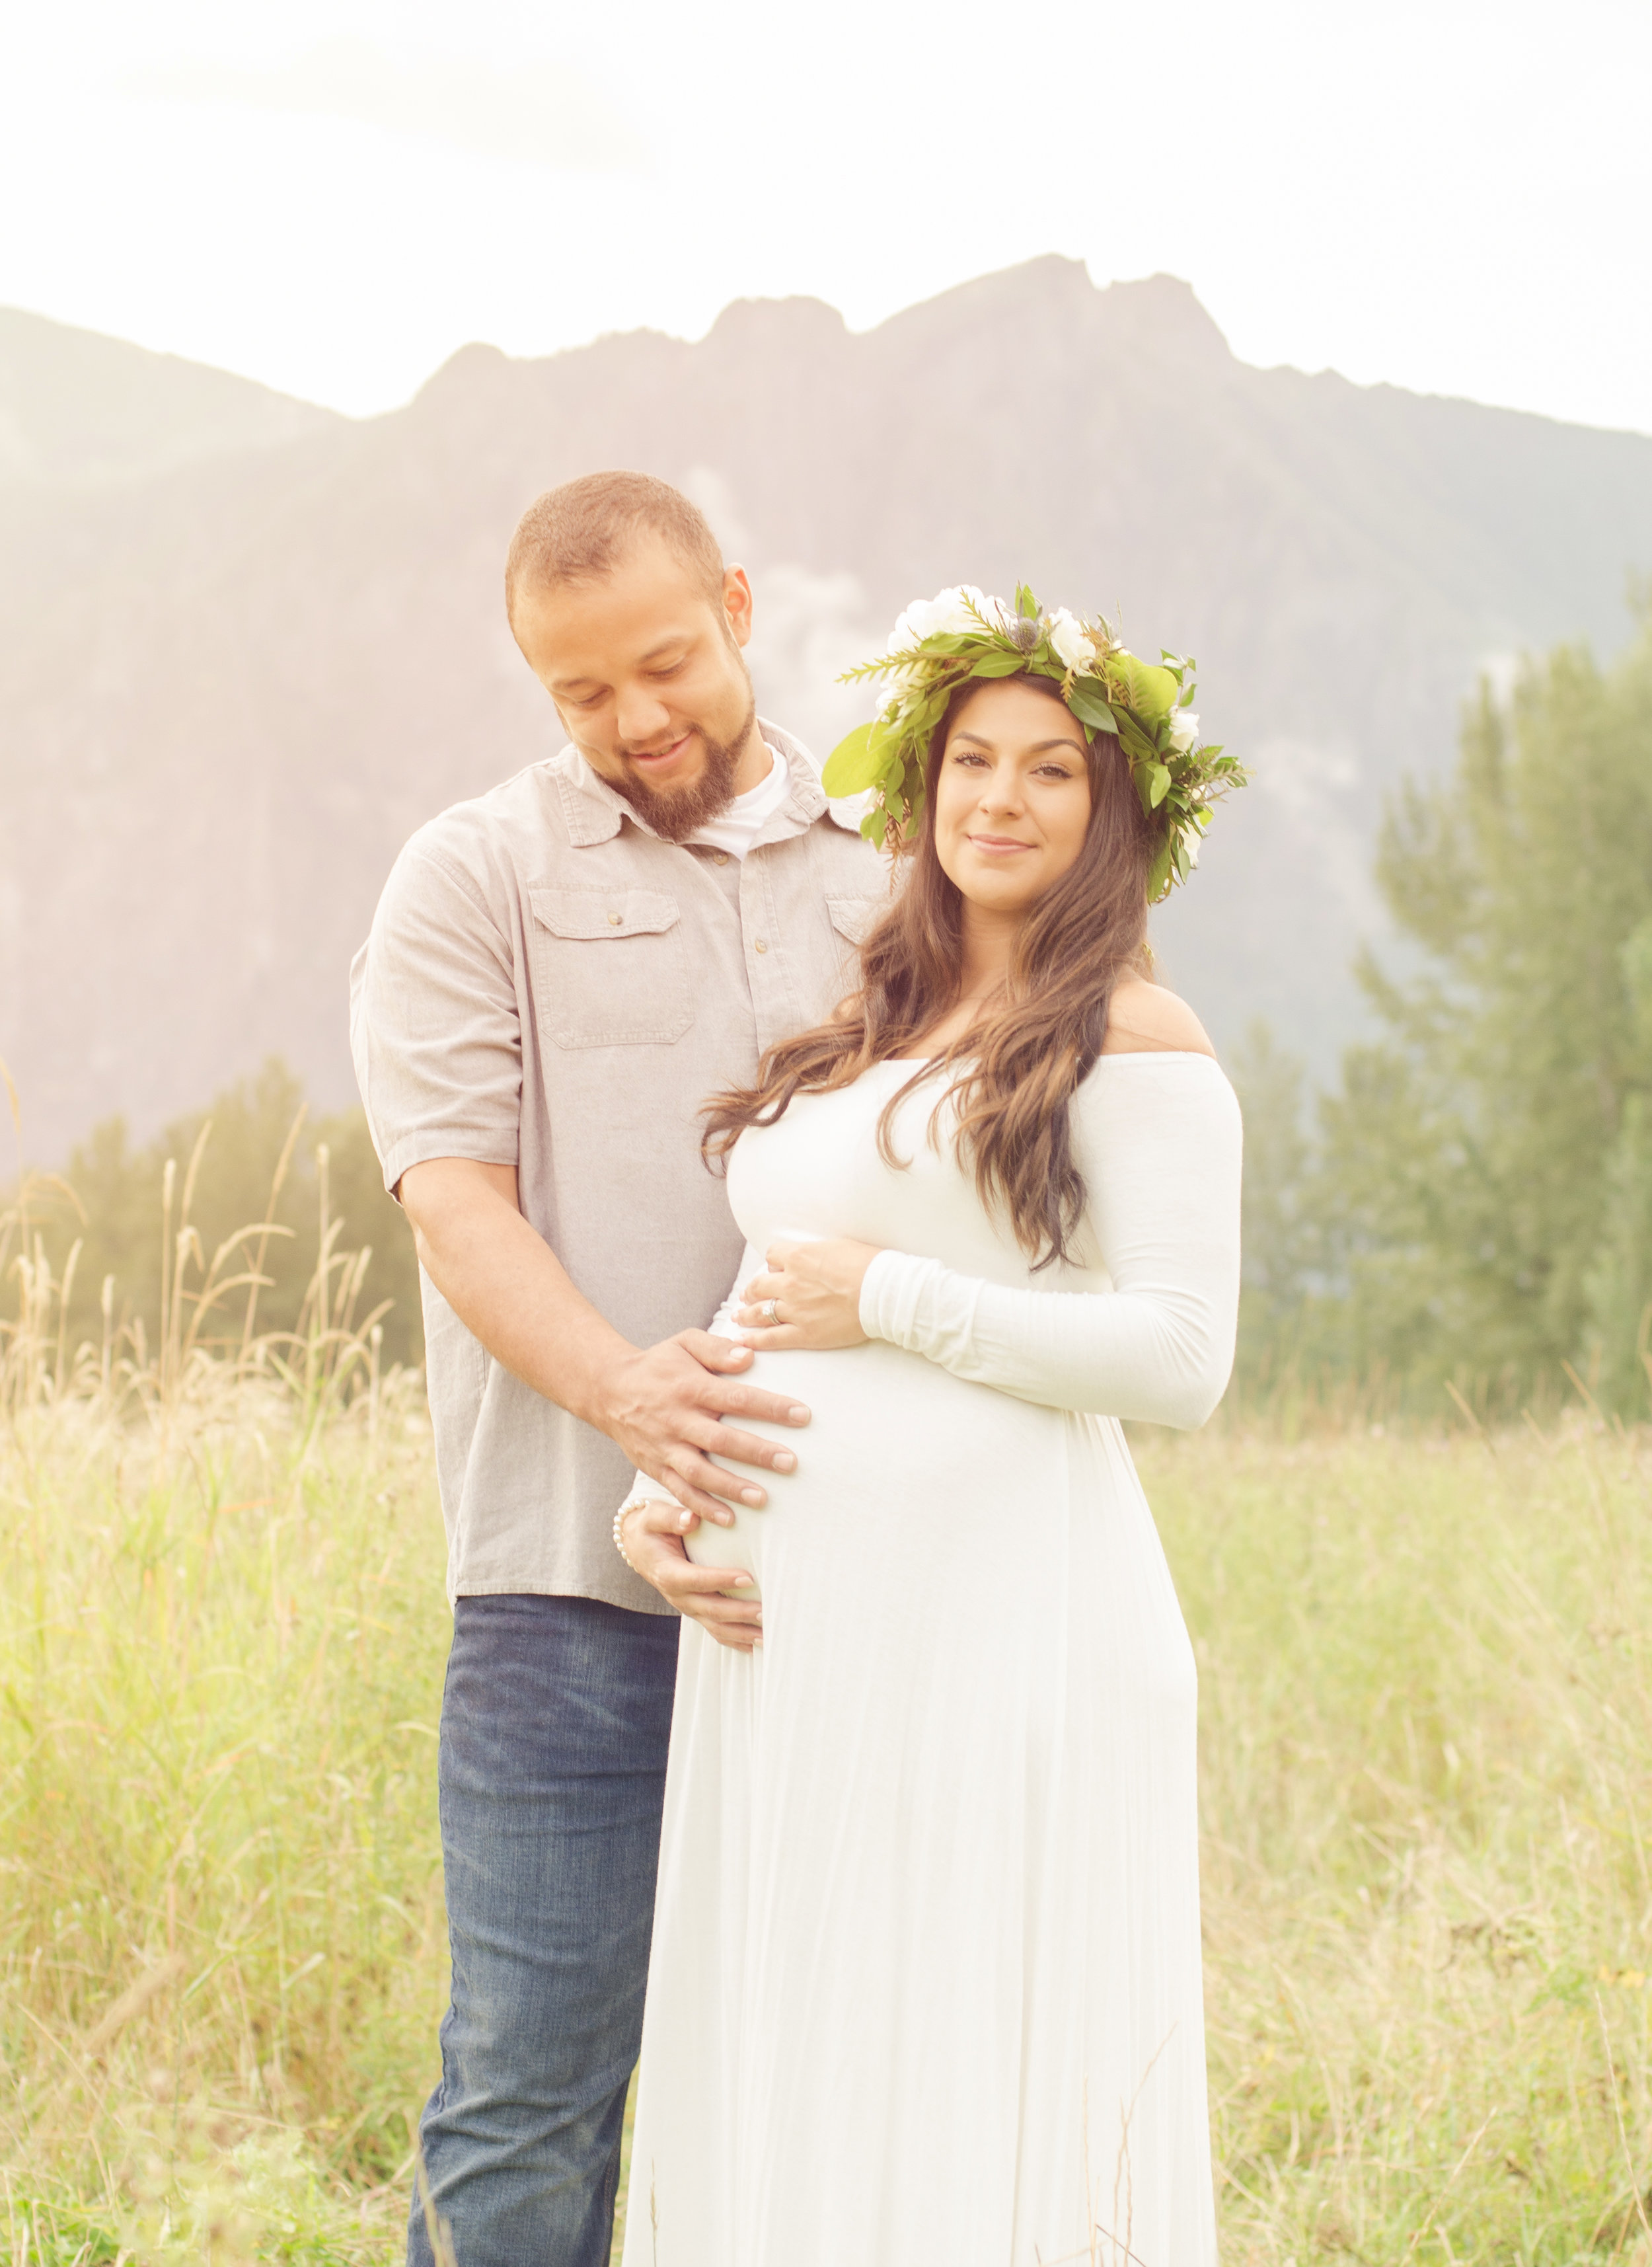 New mom confidently looking at photographer while dad embraces belly